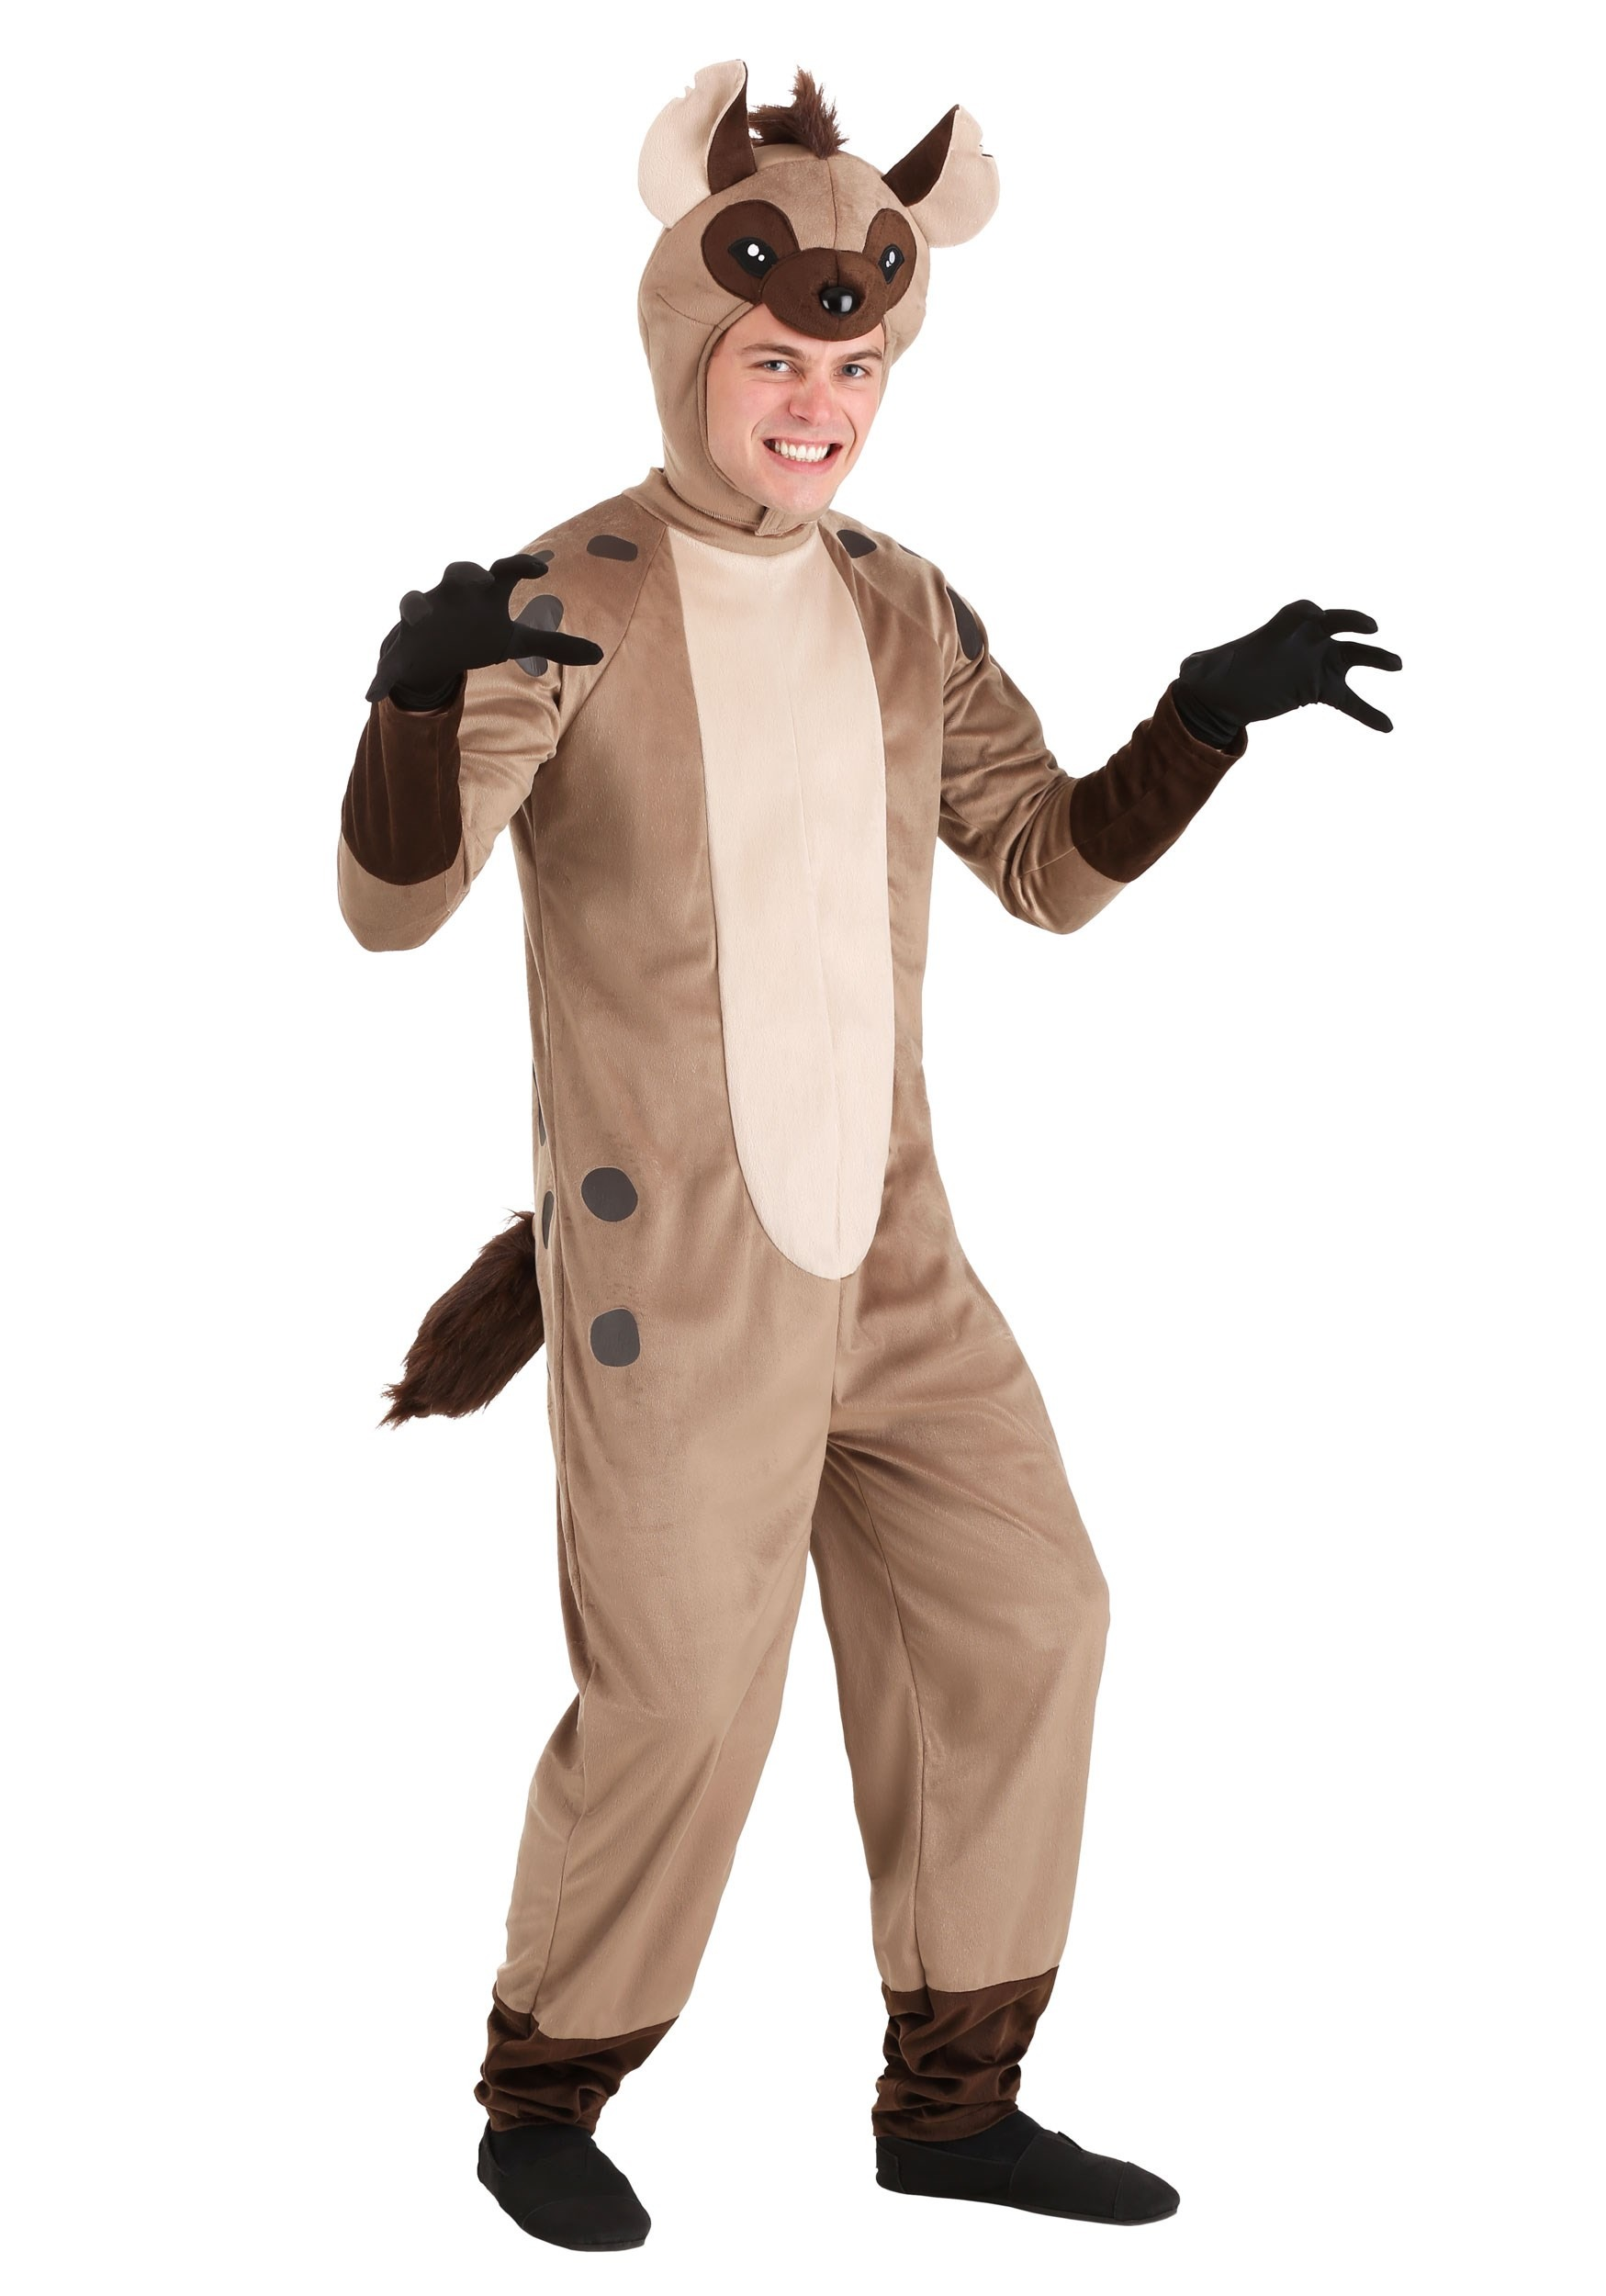 Hyena Costume for Adult's